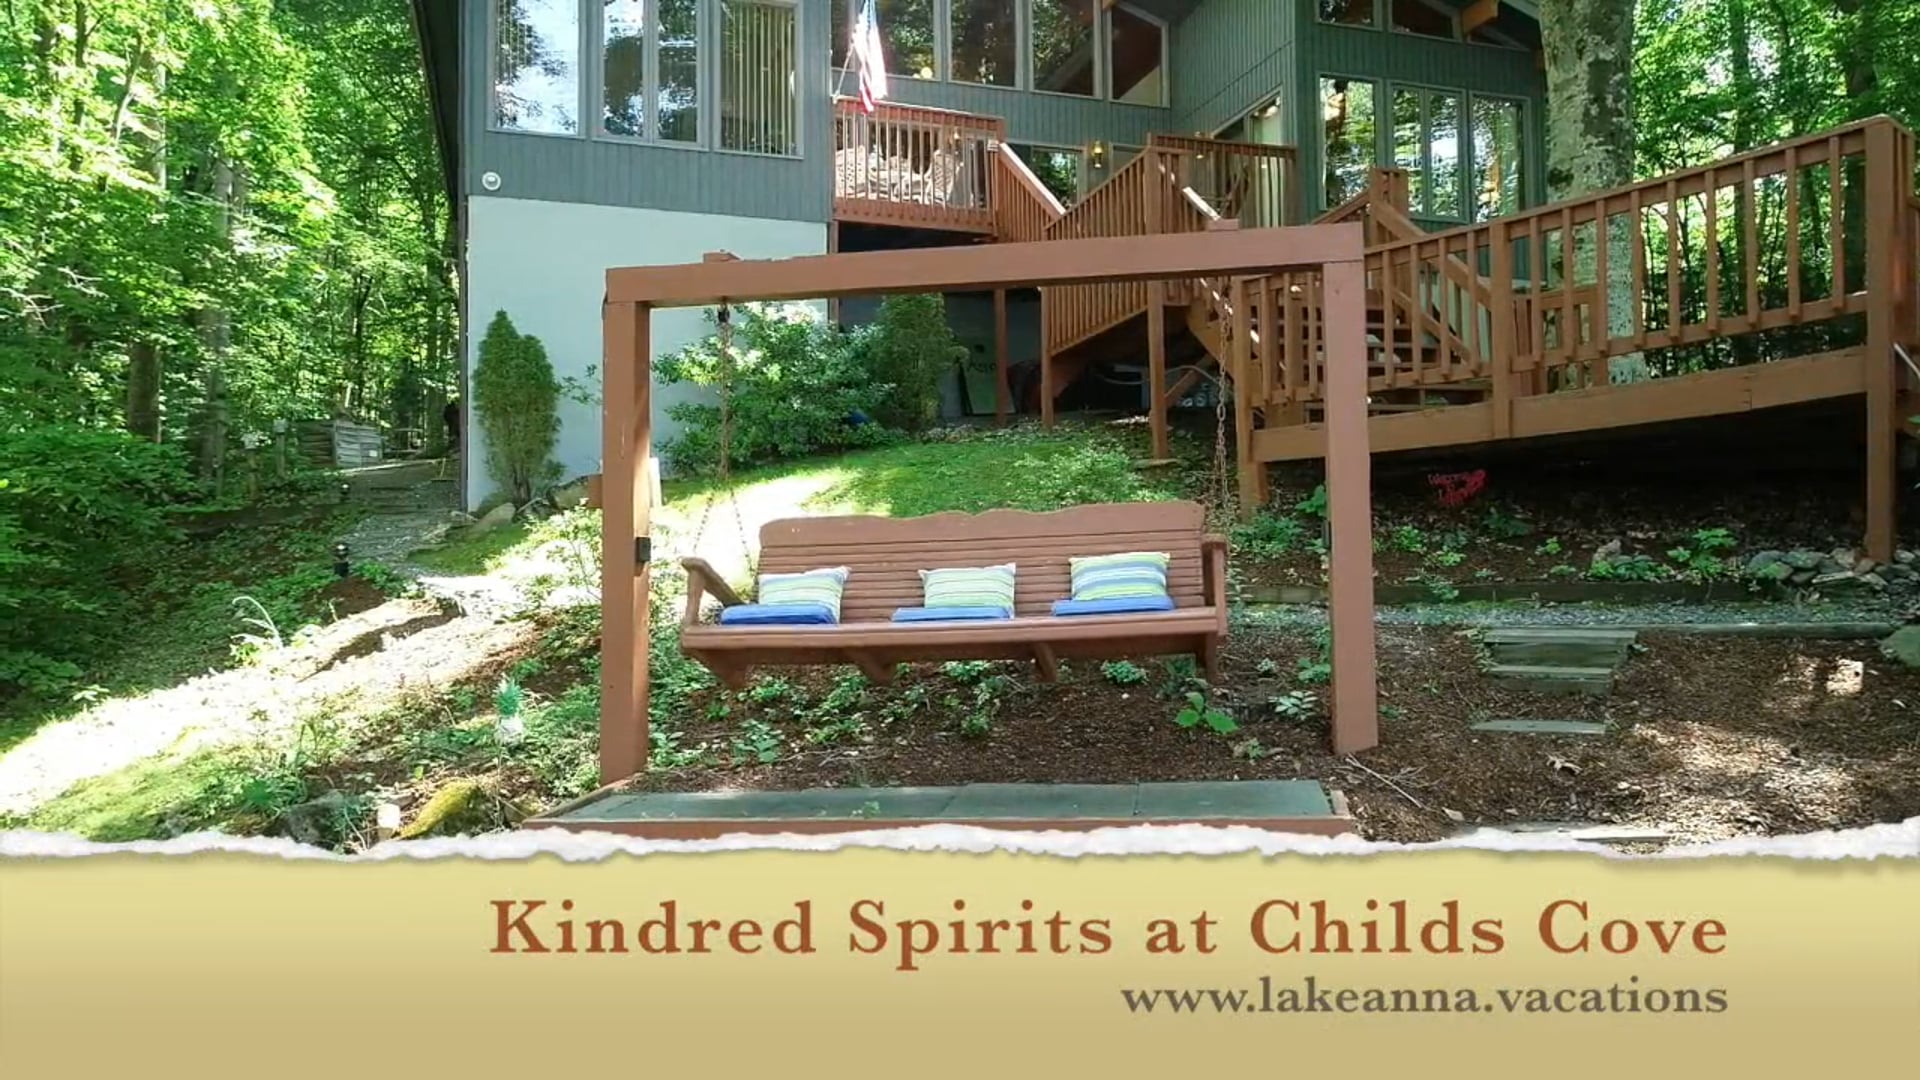 Kindred Spirits at Childs Cove